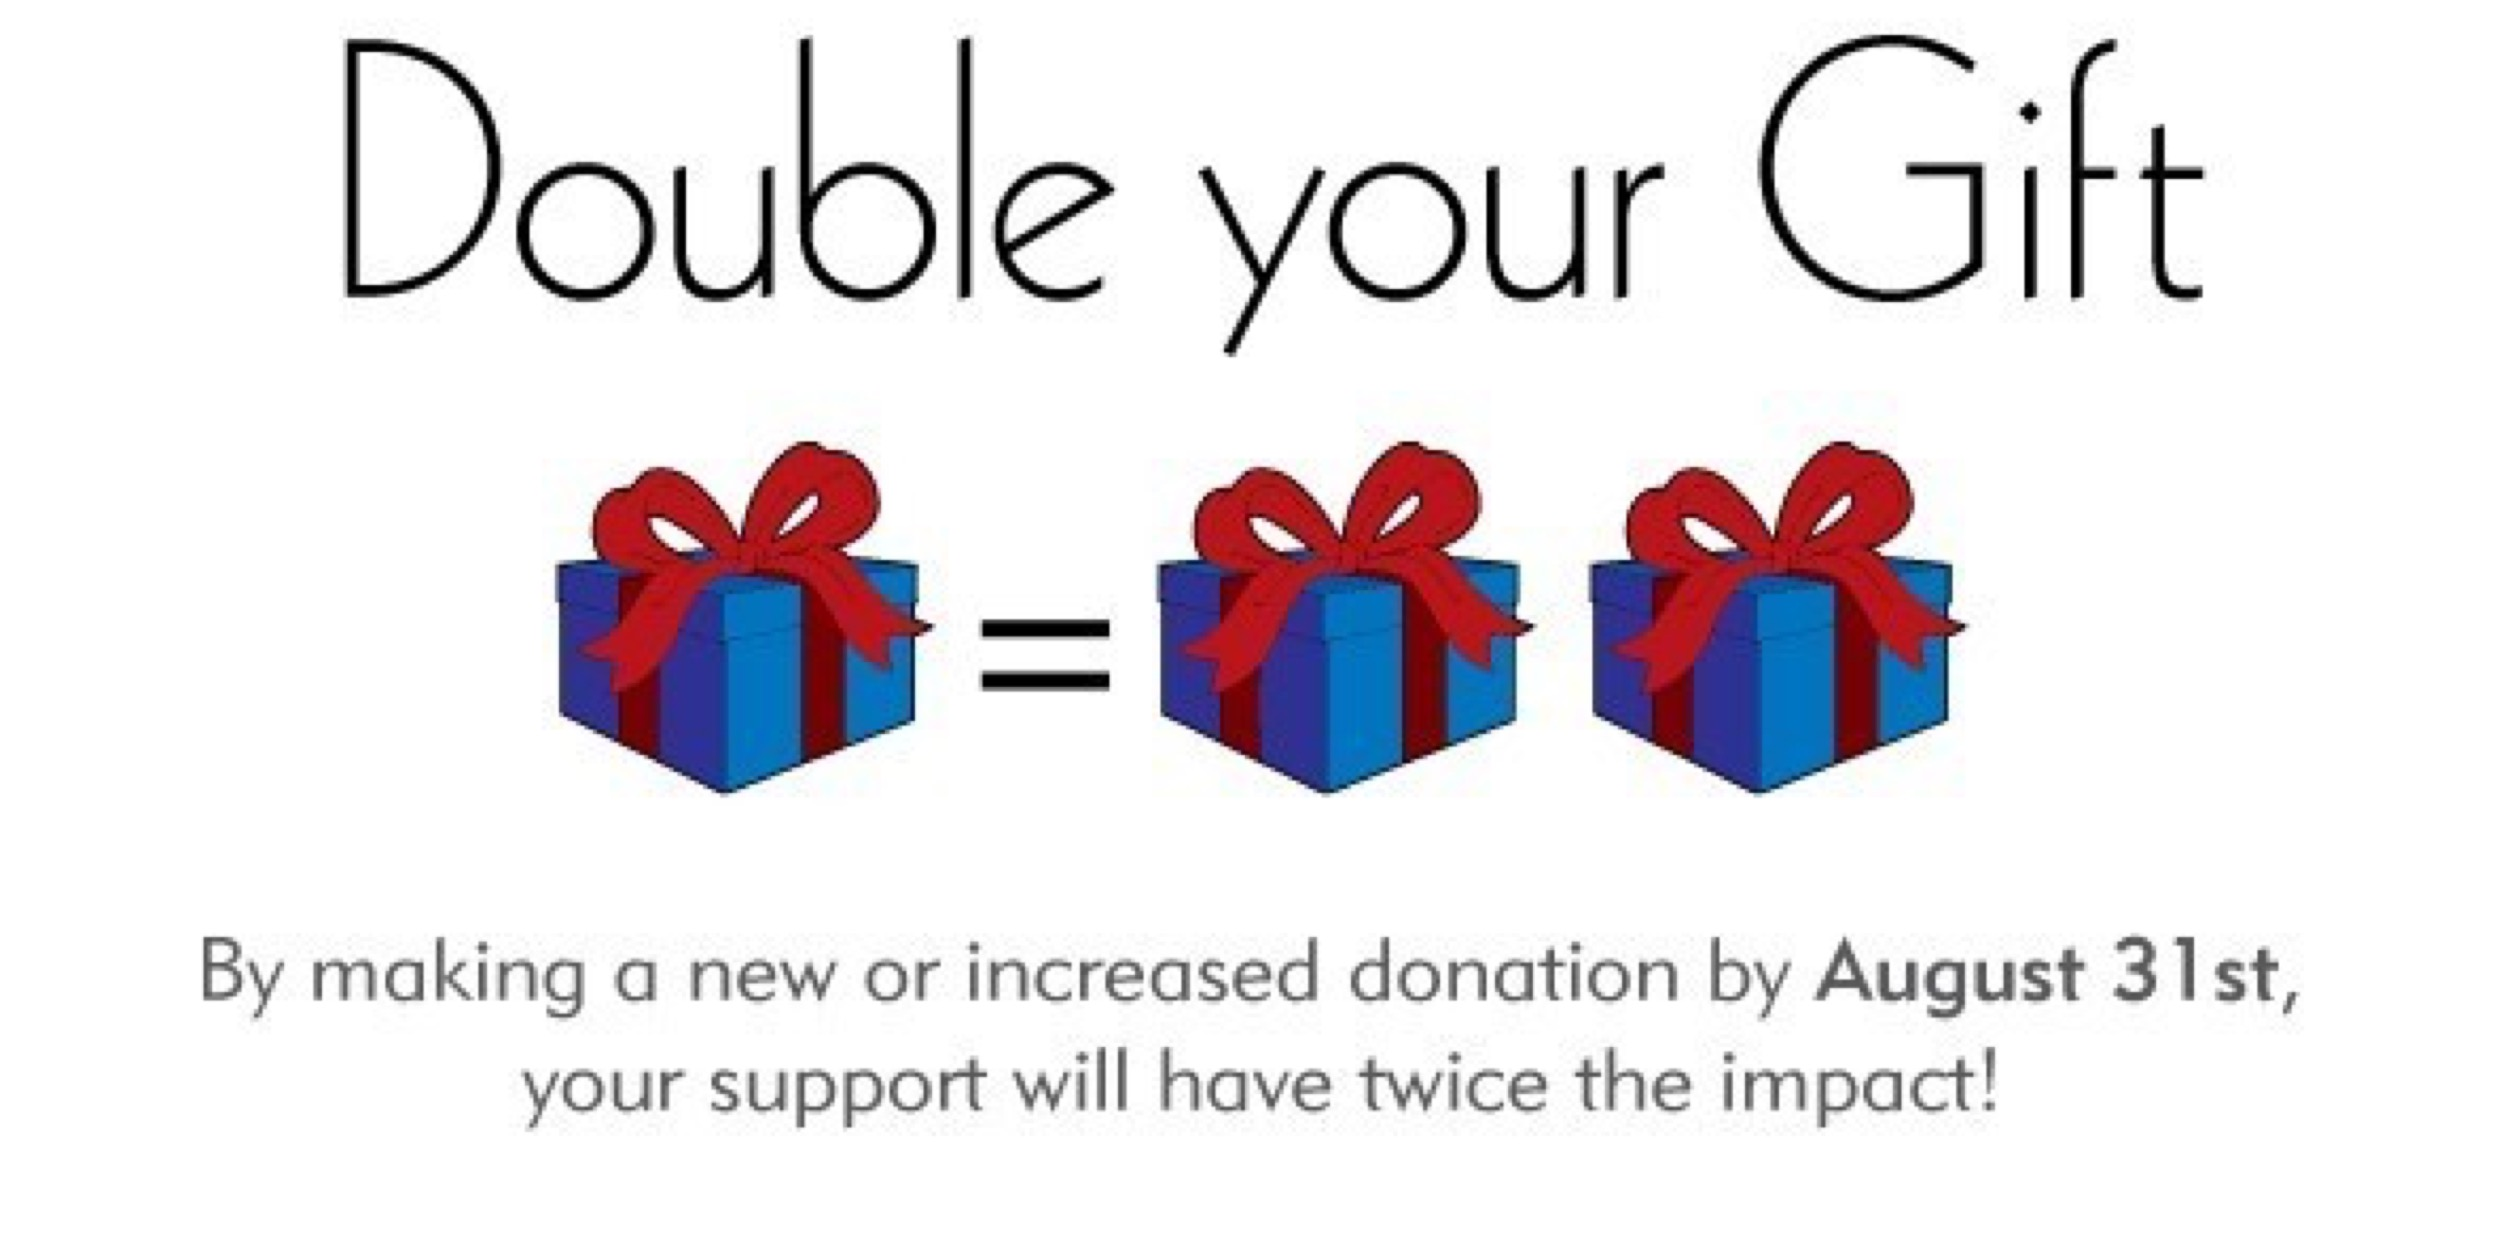 New & Increased Gifts Will Have Twice the Impact!